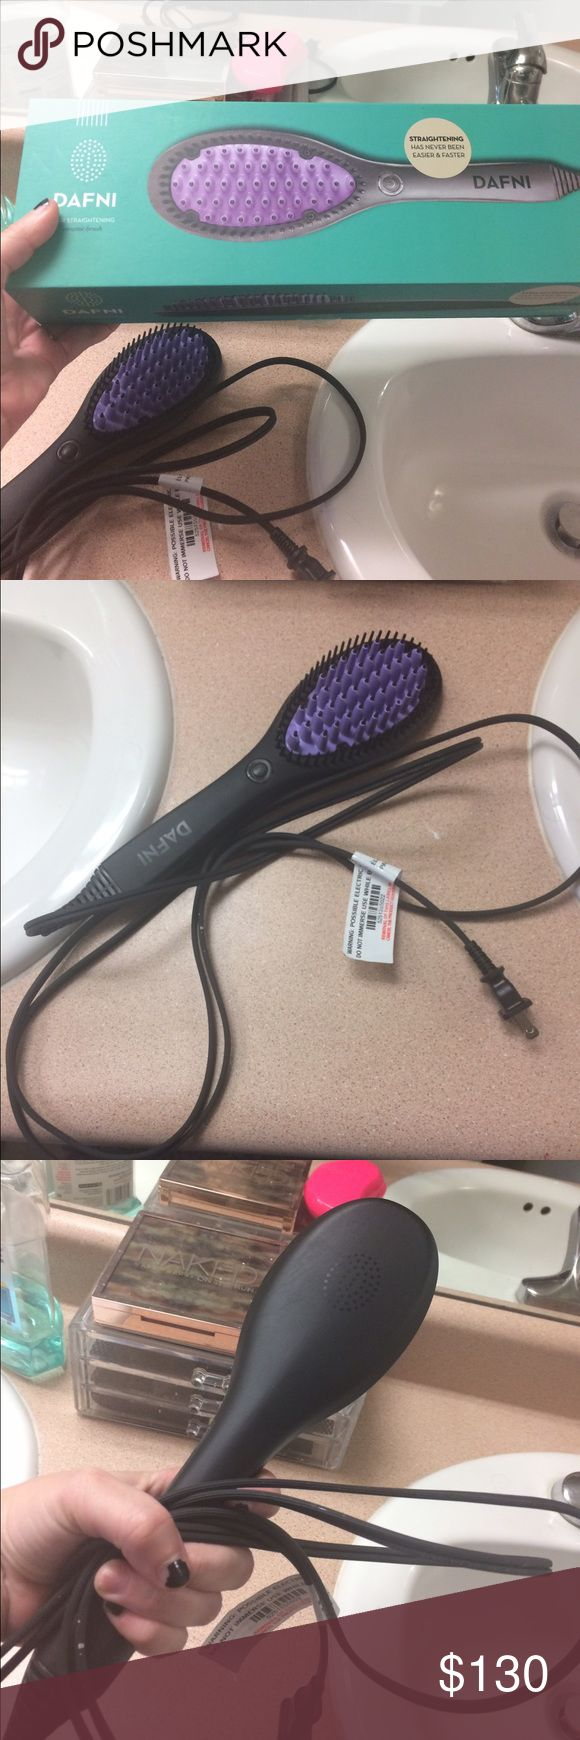 Dafni straightening brush Authentic I bought this for 170$, it works well, im selling because I hardly use it. Beware of knockoff dafni brushes. If the price is too goo to be true-then it is. Which is why I bought mine on their site. Im open to offers, but no low ballers. Bought in October 2016. Dafni Other